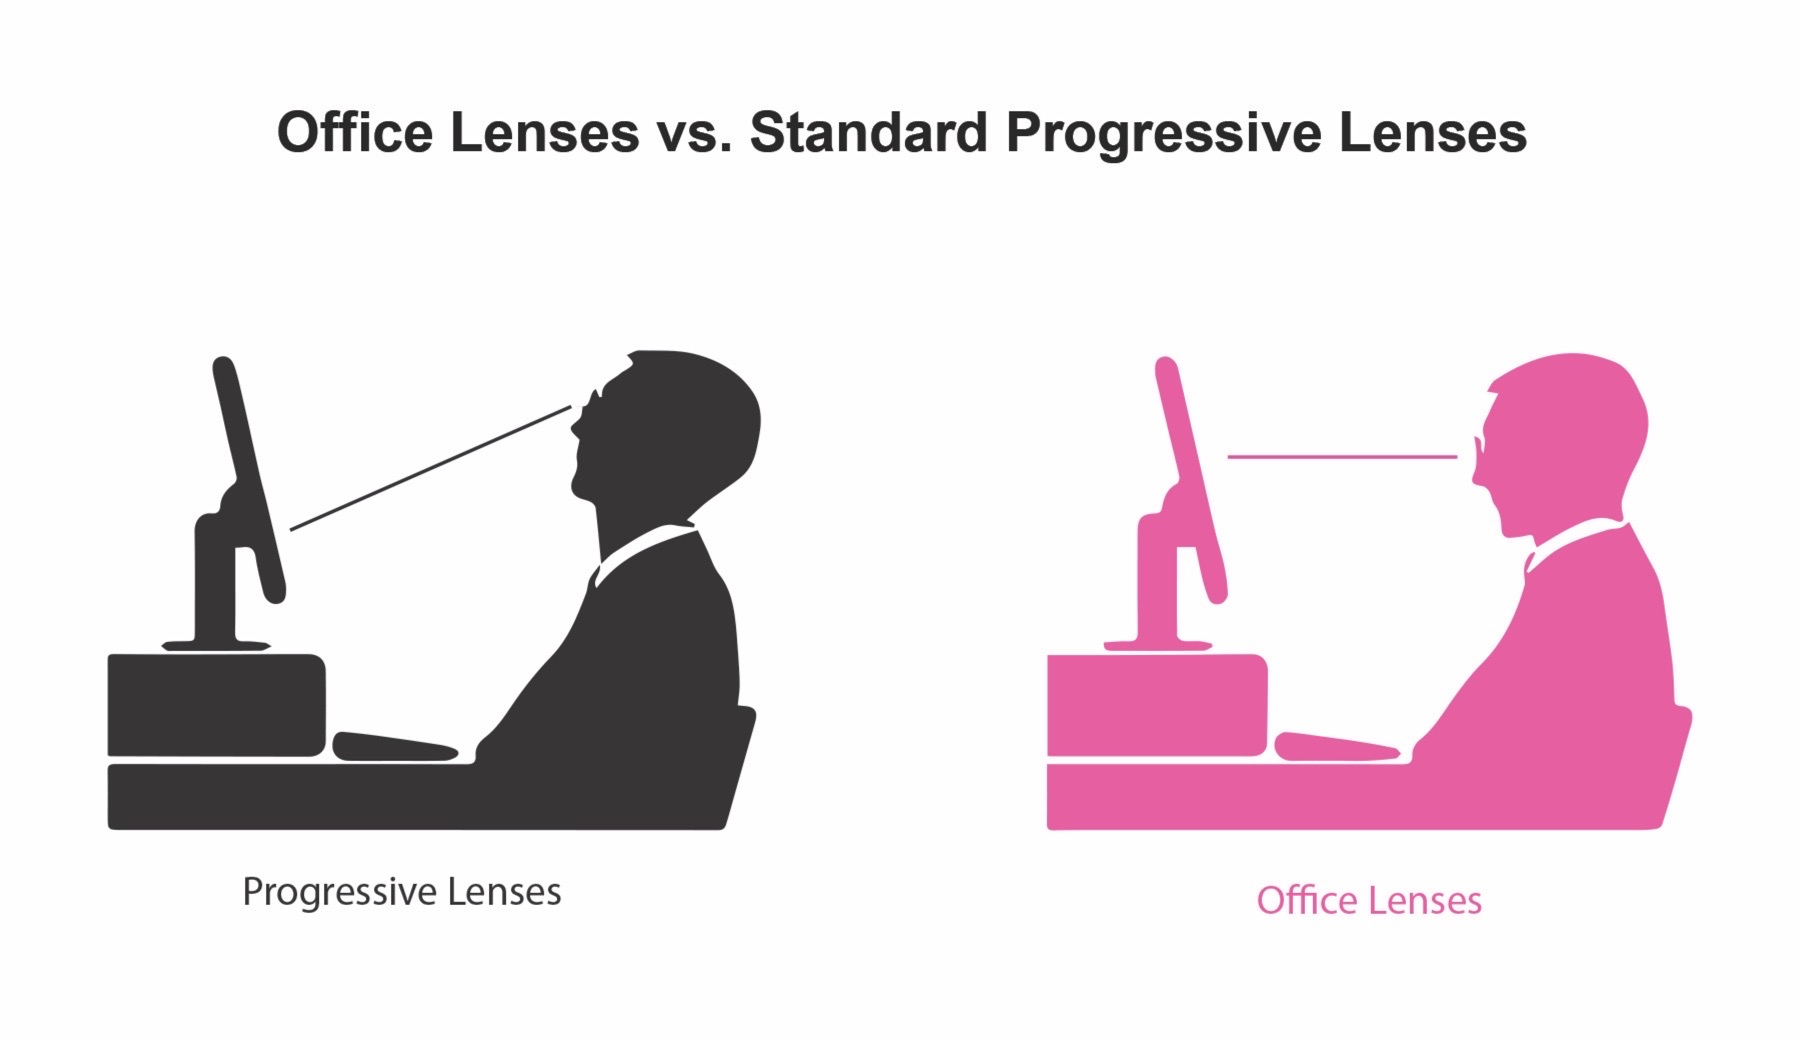 The difference between office lenses and standard progress lenses, is that office lenses allow you to look directly at the computer screen without tilting your head back to read detailed text.